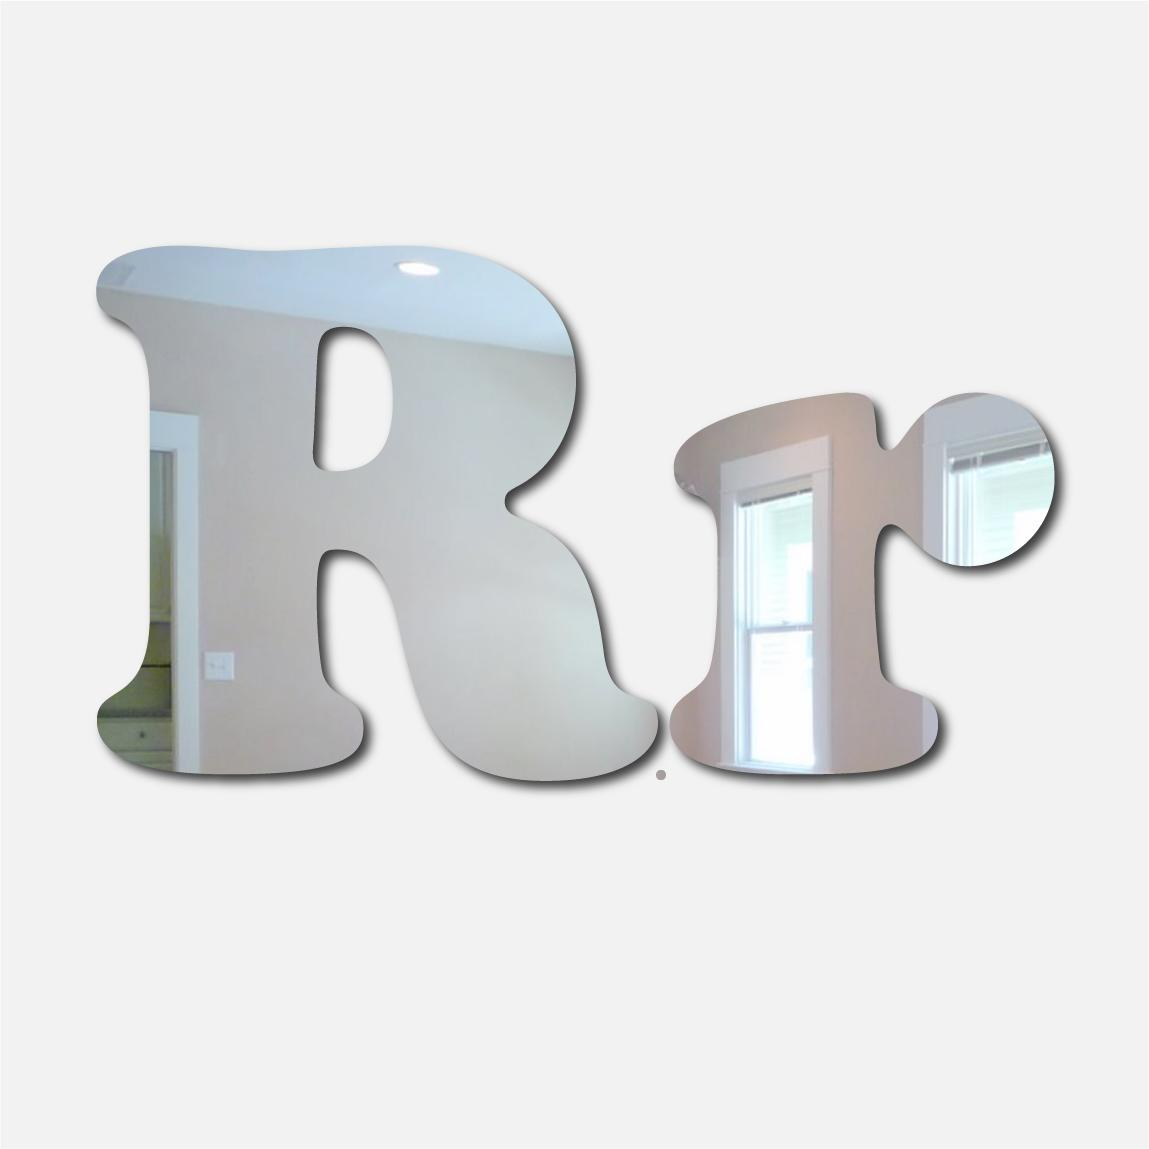 Bubble Letter R Mirror   Mirrored Letters   Letter MirrorsLowercase R Bubble Letter